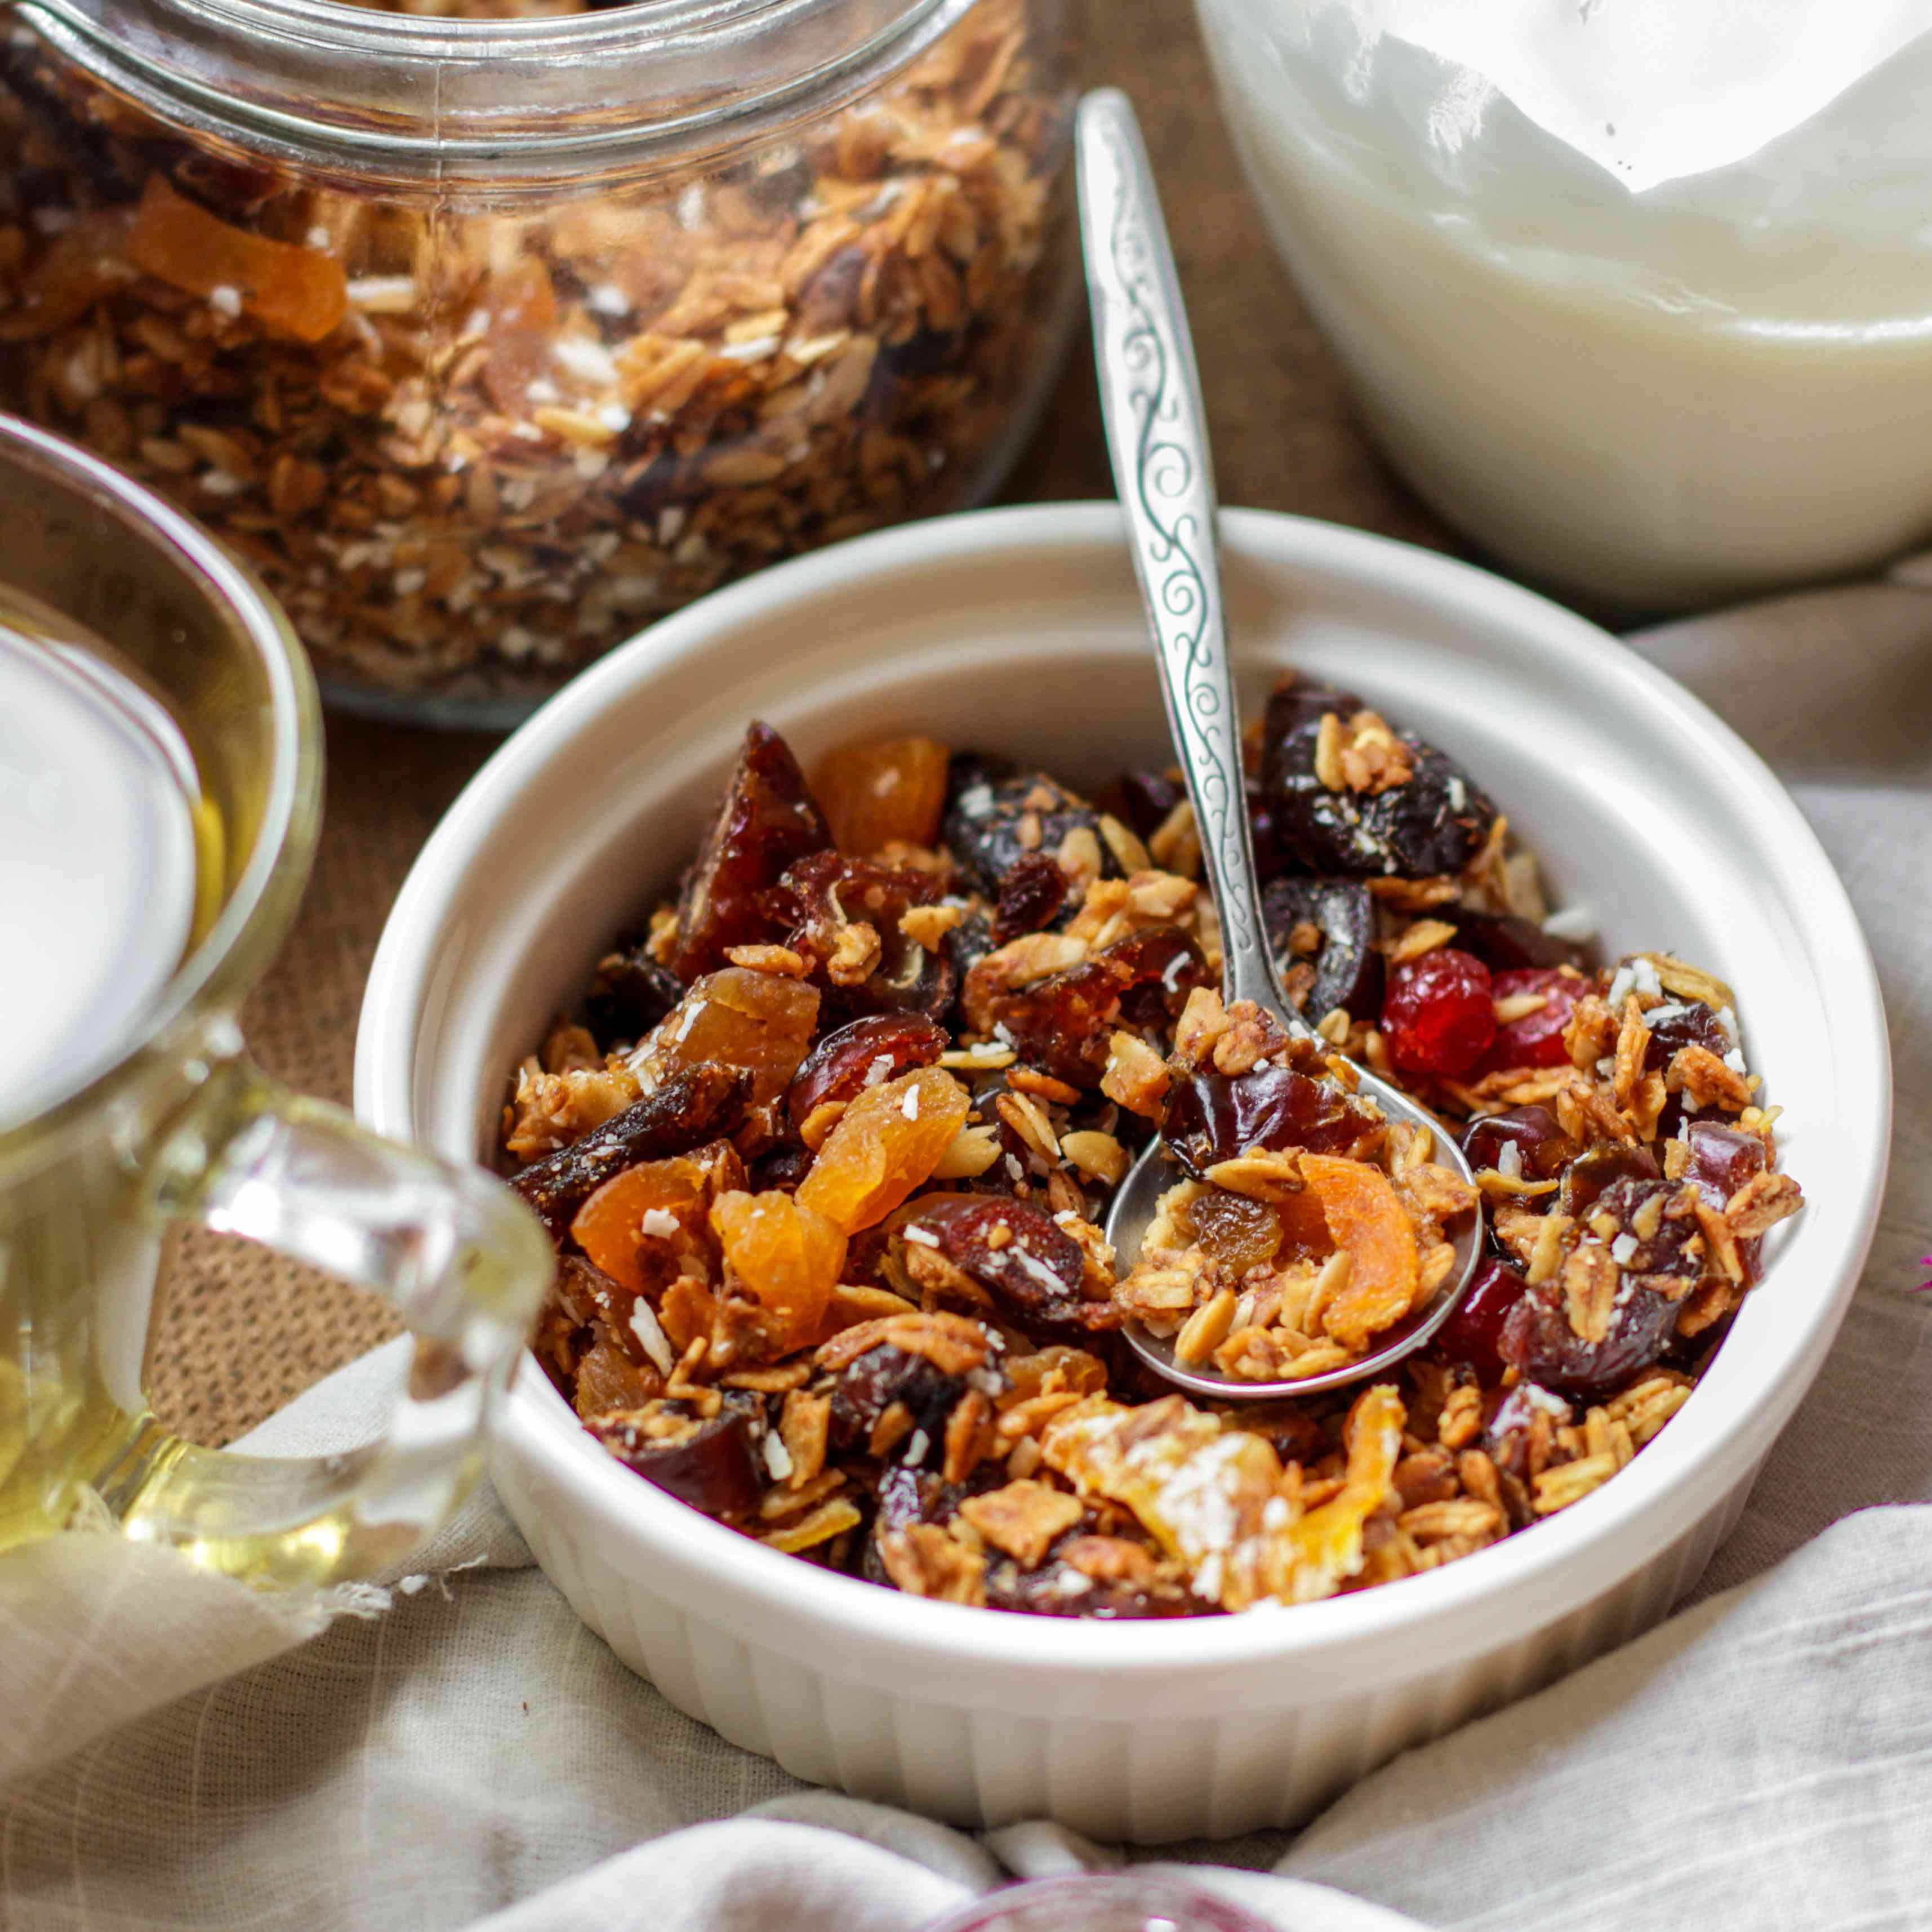 Granola with dried fruits (muesli with fruit and berries)